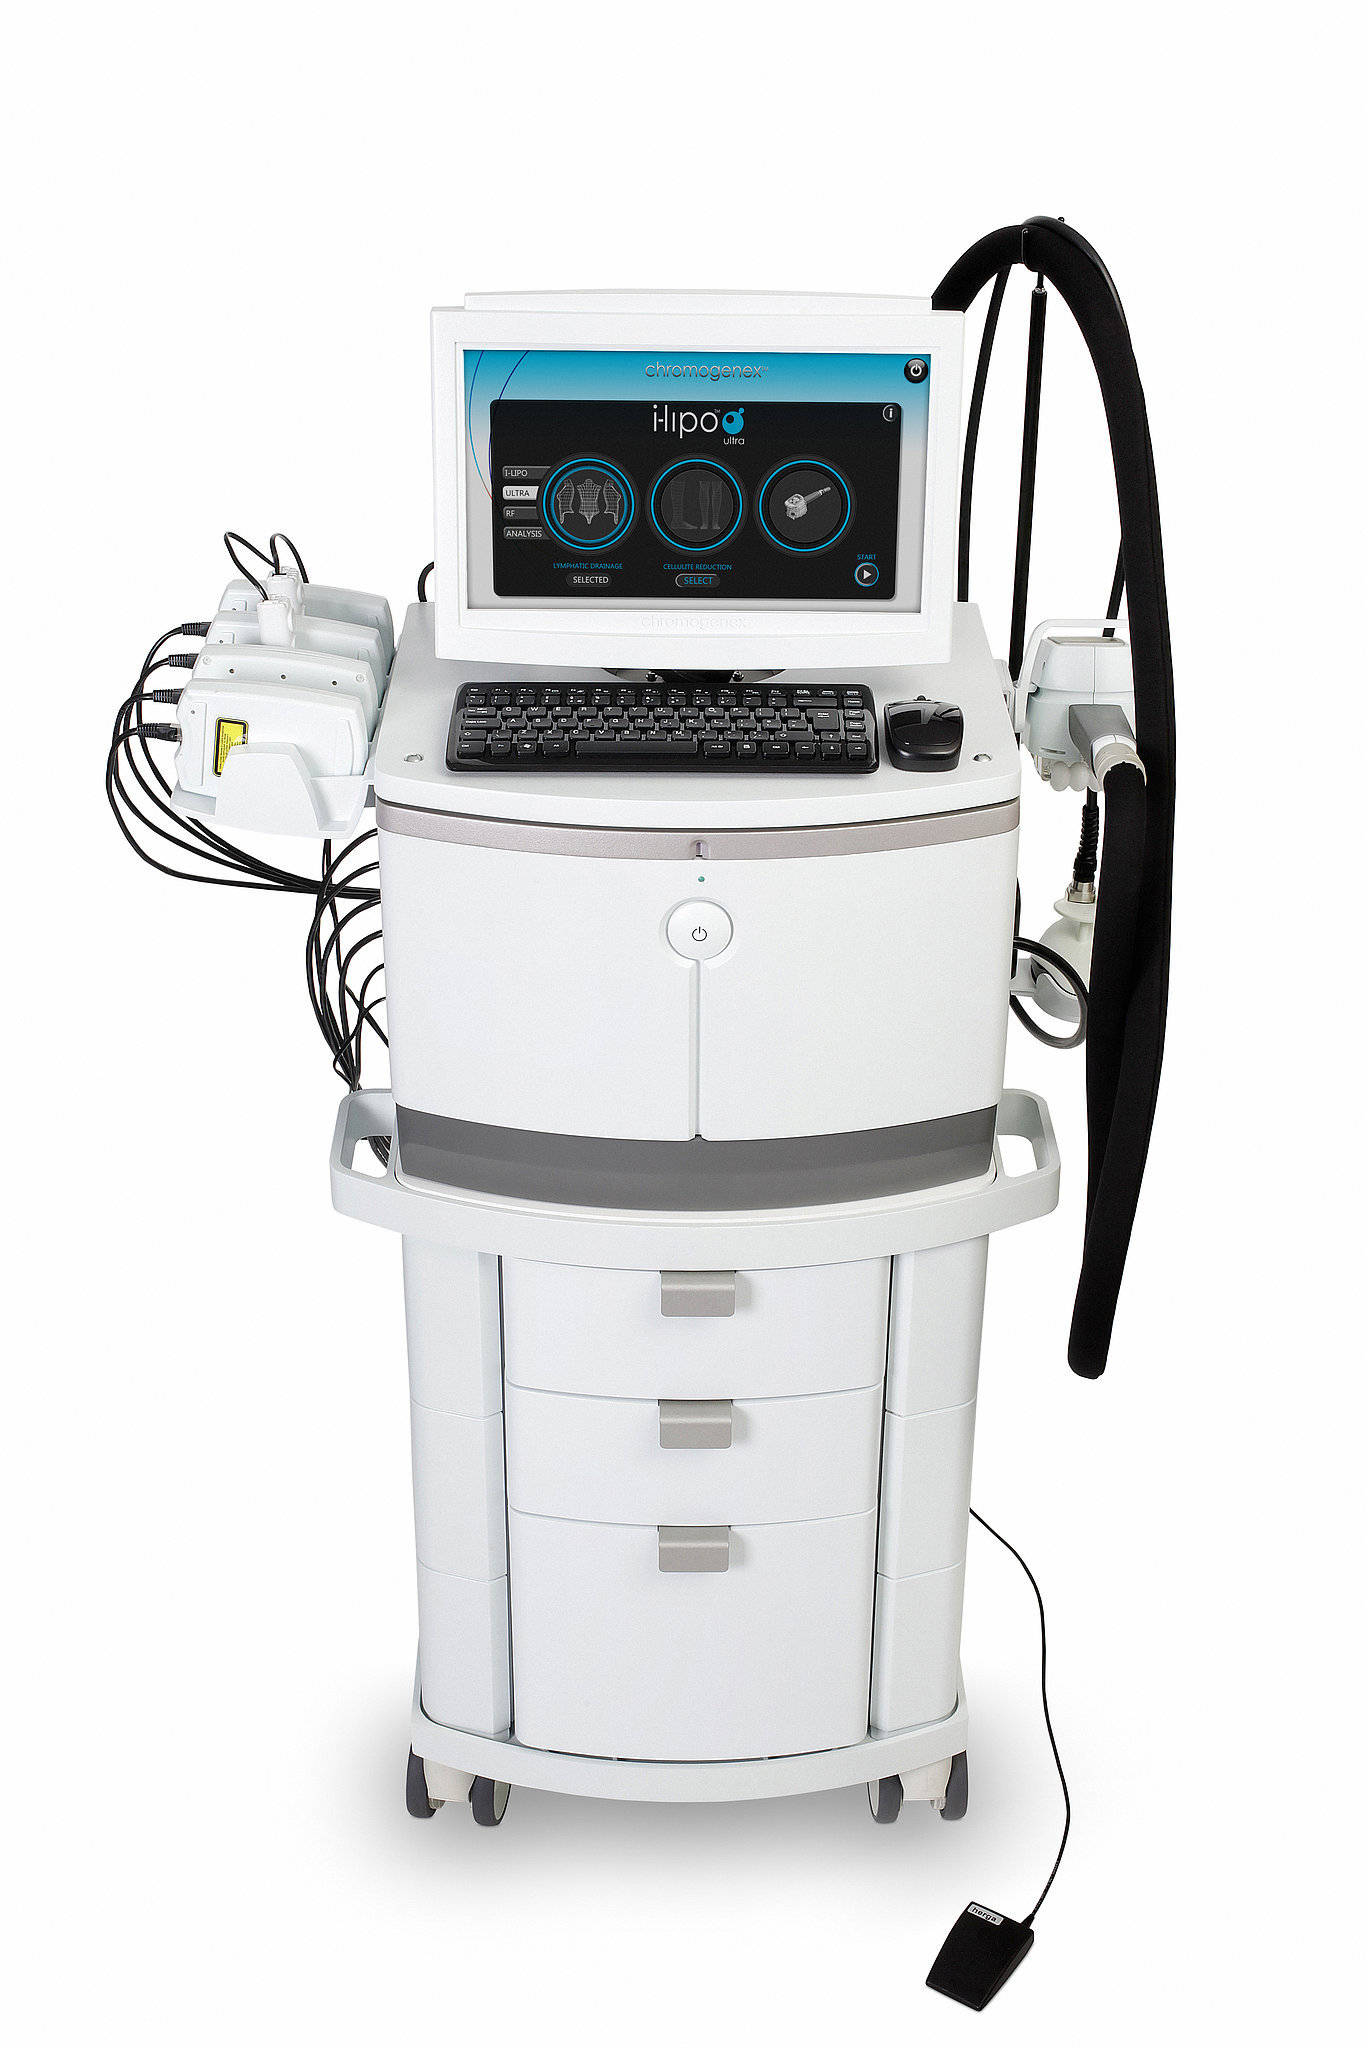 """How Does It Work? i-Lipoxcell uses laser technology to zero in on fat. A dual wavelength of red light penetrates the fat cells in a targeted area and pops them open, which allows the fatty acid contents to leak out like air escaping from a balloon. This technique causes the same physiological response of a fat cell that occurs when you diet and exercise, except instead of running, lifting weights, or climbing stairs to burst open your fat cells and deflate them, i-Lipoxcell uses its signature red light. """"That means this process is completely natural and is something your body expects to happen, which is why this works so well,"""" explains Dr. Heskett. """"We're working with the natural functions of the body."""" The result is fat loss that can range anywhere from a quarter of an inch up to three inches in one 20 minute session, depending on how much fat you have to lose. """"Still, heavier people don't necessarily do better than thinner people,"""" Dr. Heskett assures. """"There are visible results on patients of every size.""""  The reason for such successful results? Although you're burning just 300 calories (about the equivalent of a bagel and cream cheese) in one appointment, which you could achieve in a single workout session without a problem, the difference is that the i-Lipoxcell laser burns those calories from a concentrated area as opposed to all over your body like with traditional exercise, which is why you're able to see results in that specific region immediately. """"The calories you're burning at the gym could be from your glycogen source, which would not be from your fat at all, but this is specifically targeting fat,"""" says Dr. Heskett. """"Every little fat cell balloon in that precise area is dumping its contents during the treatment and shrinking, which is how you lose the inches."""" What Happens When You Go in For the Treatment? For starters, the i-Lipoxcell includes four laser paddles and two circulation probes. First, Dr. Heskett positioned the four paddles around the per"""